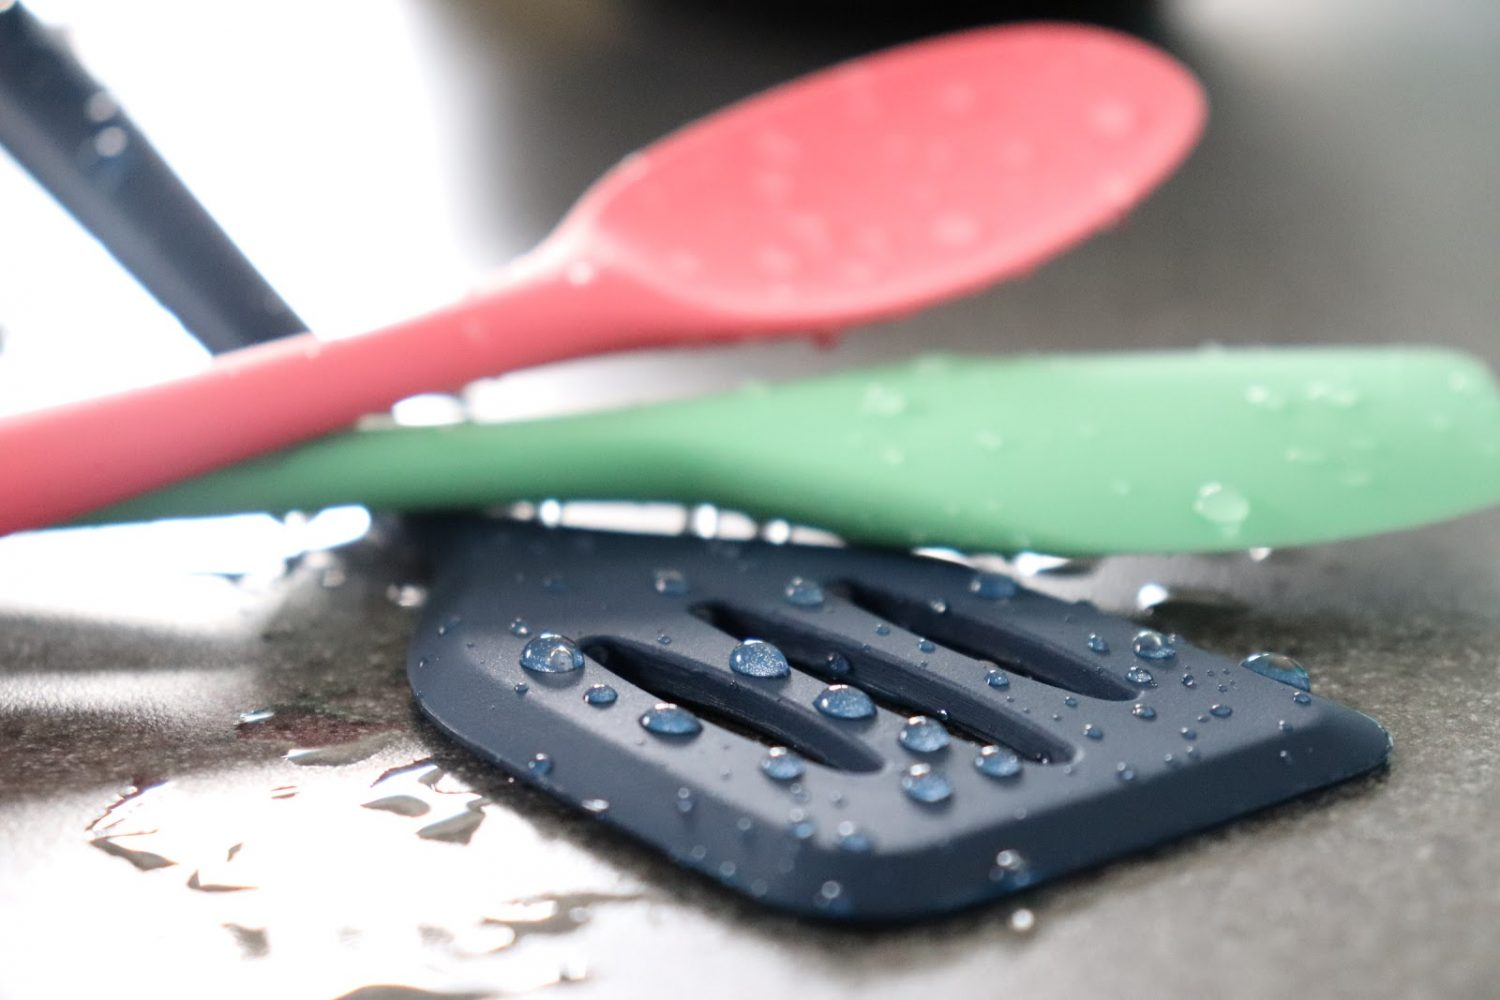 Clean silicone spoons